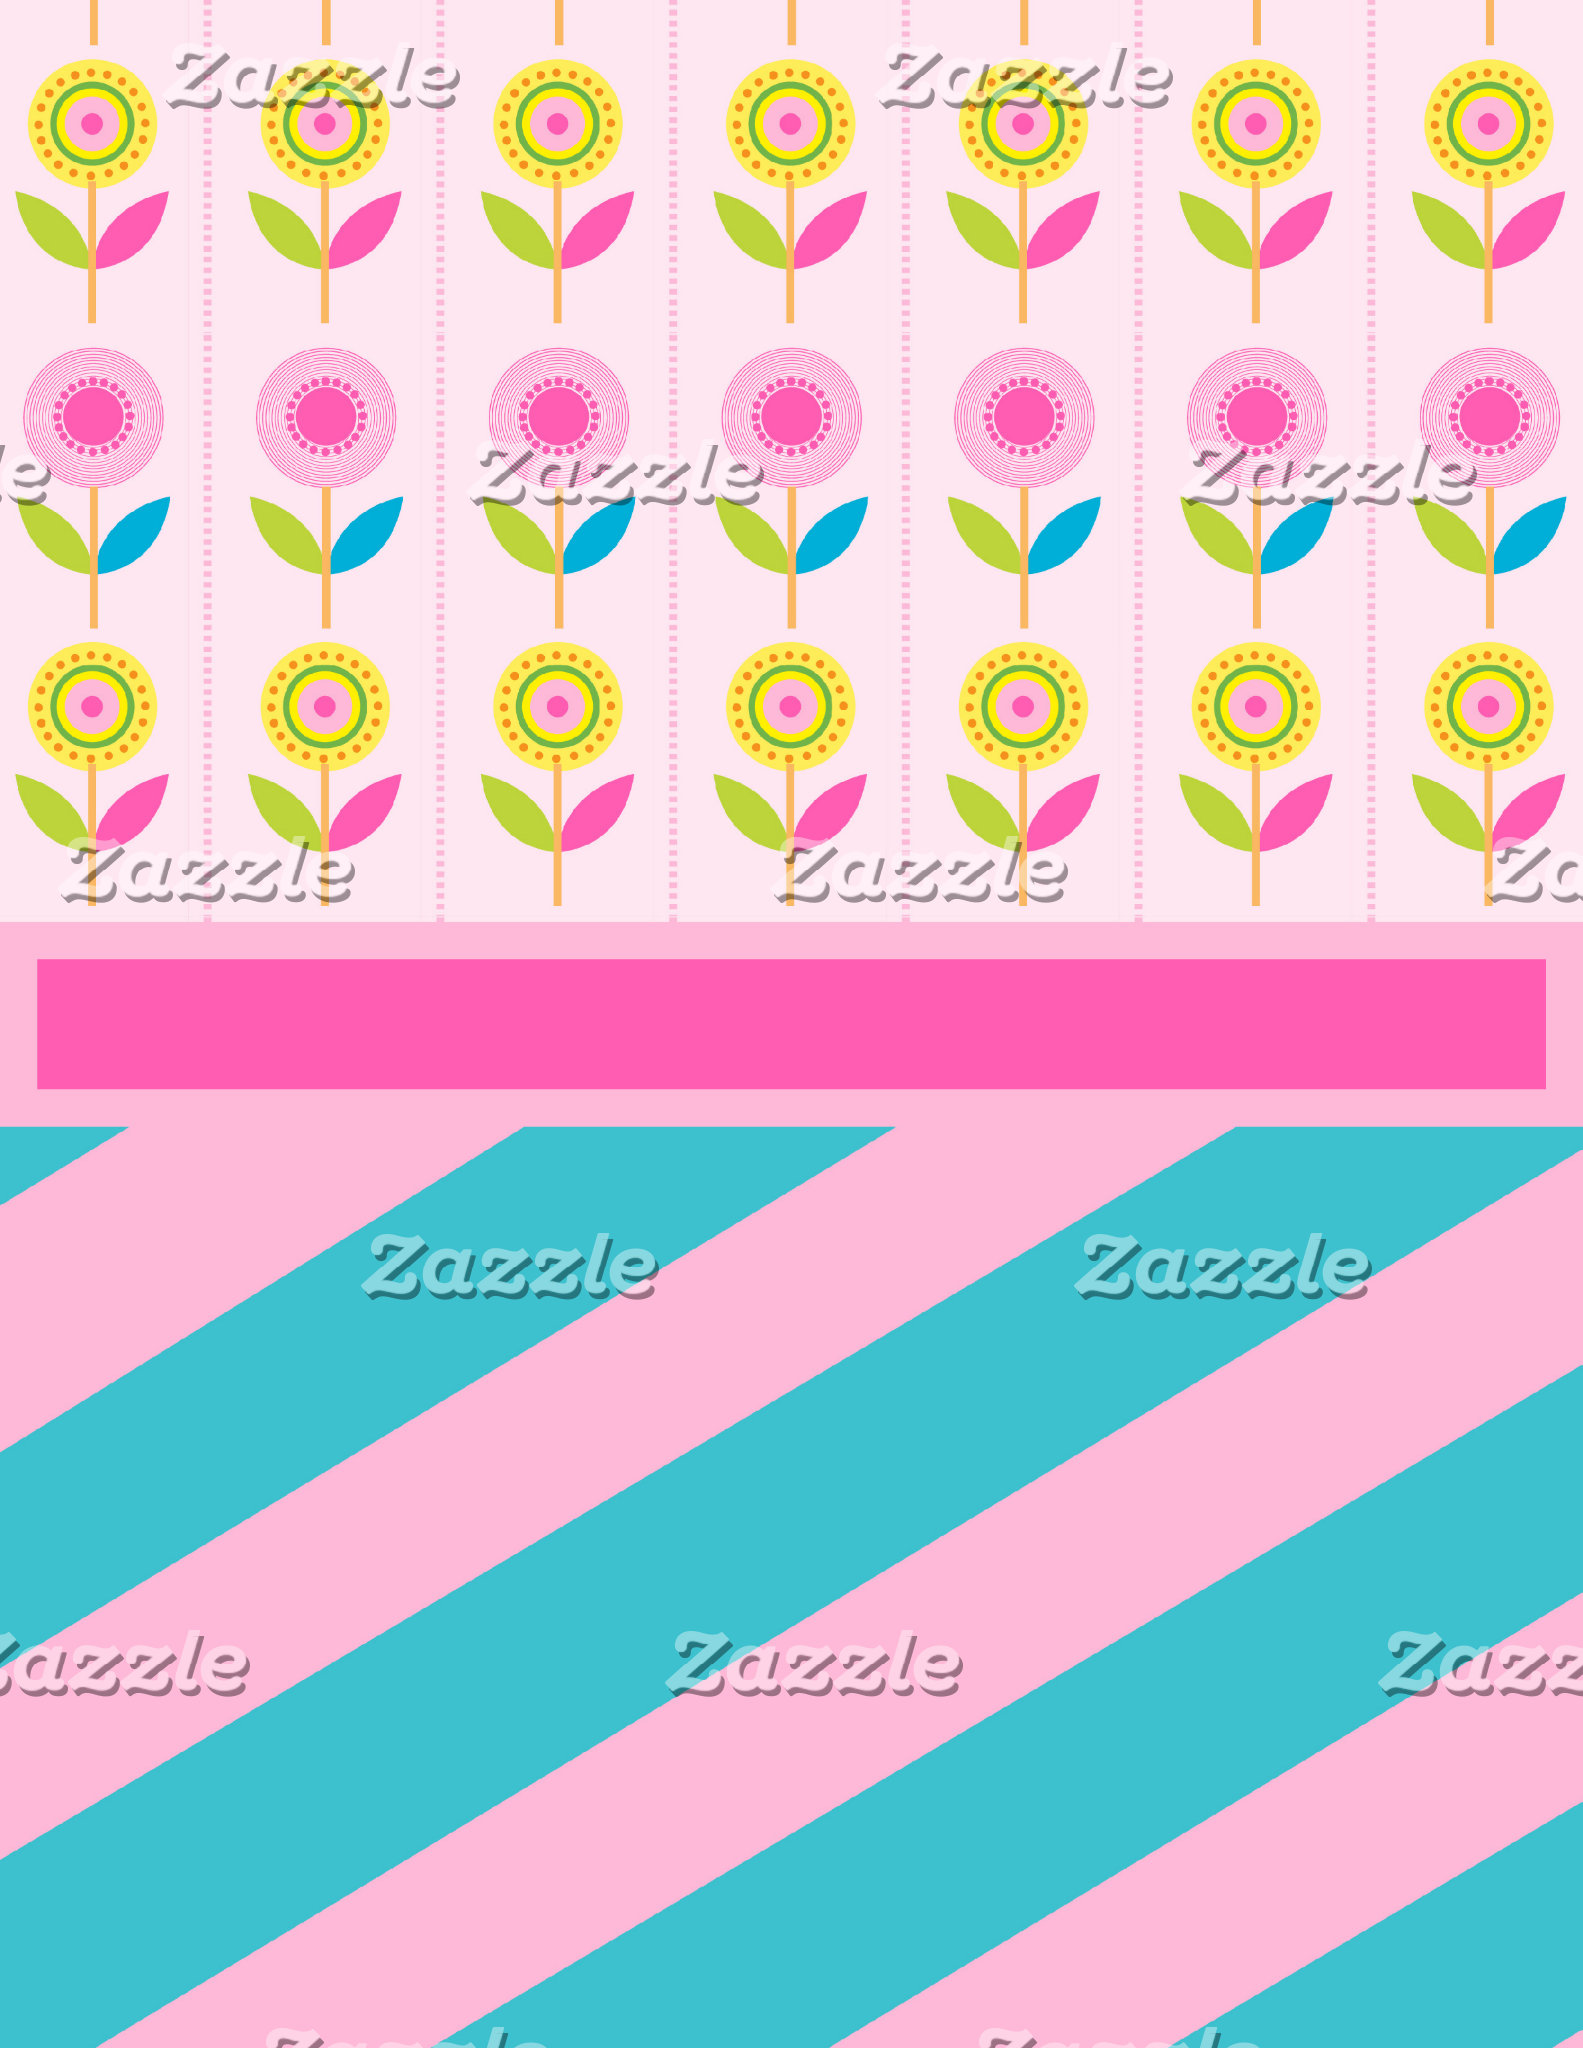 Pretty Spring Scenes with Flowers and Stripes